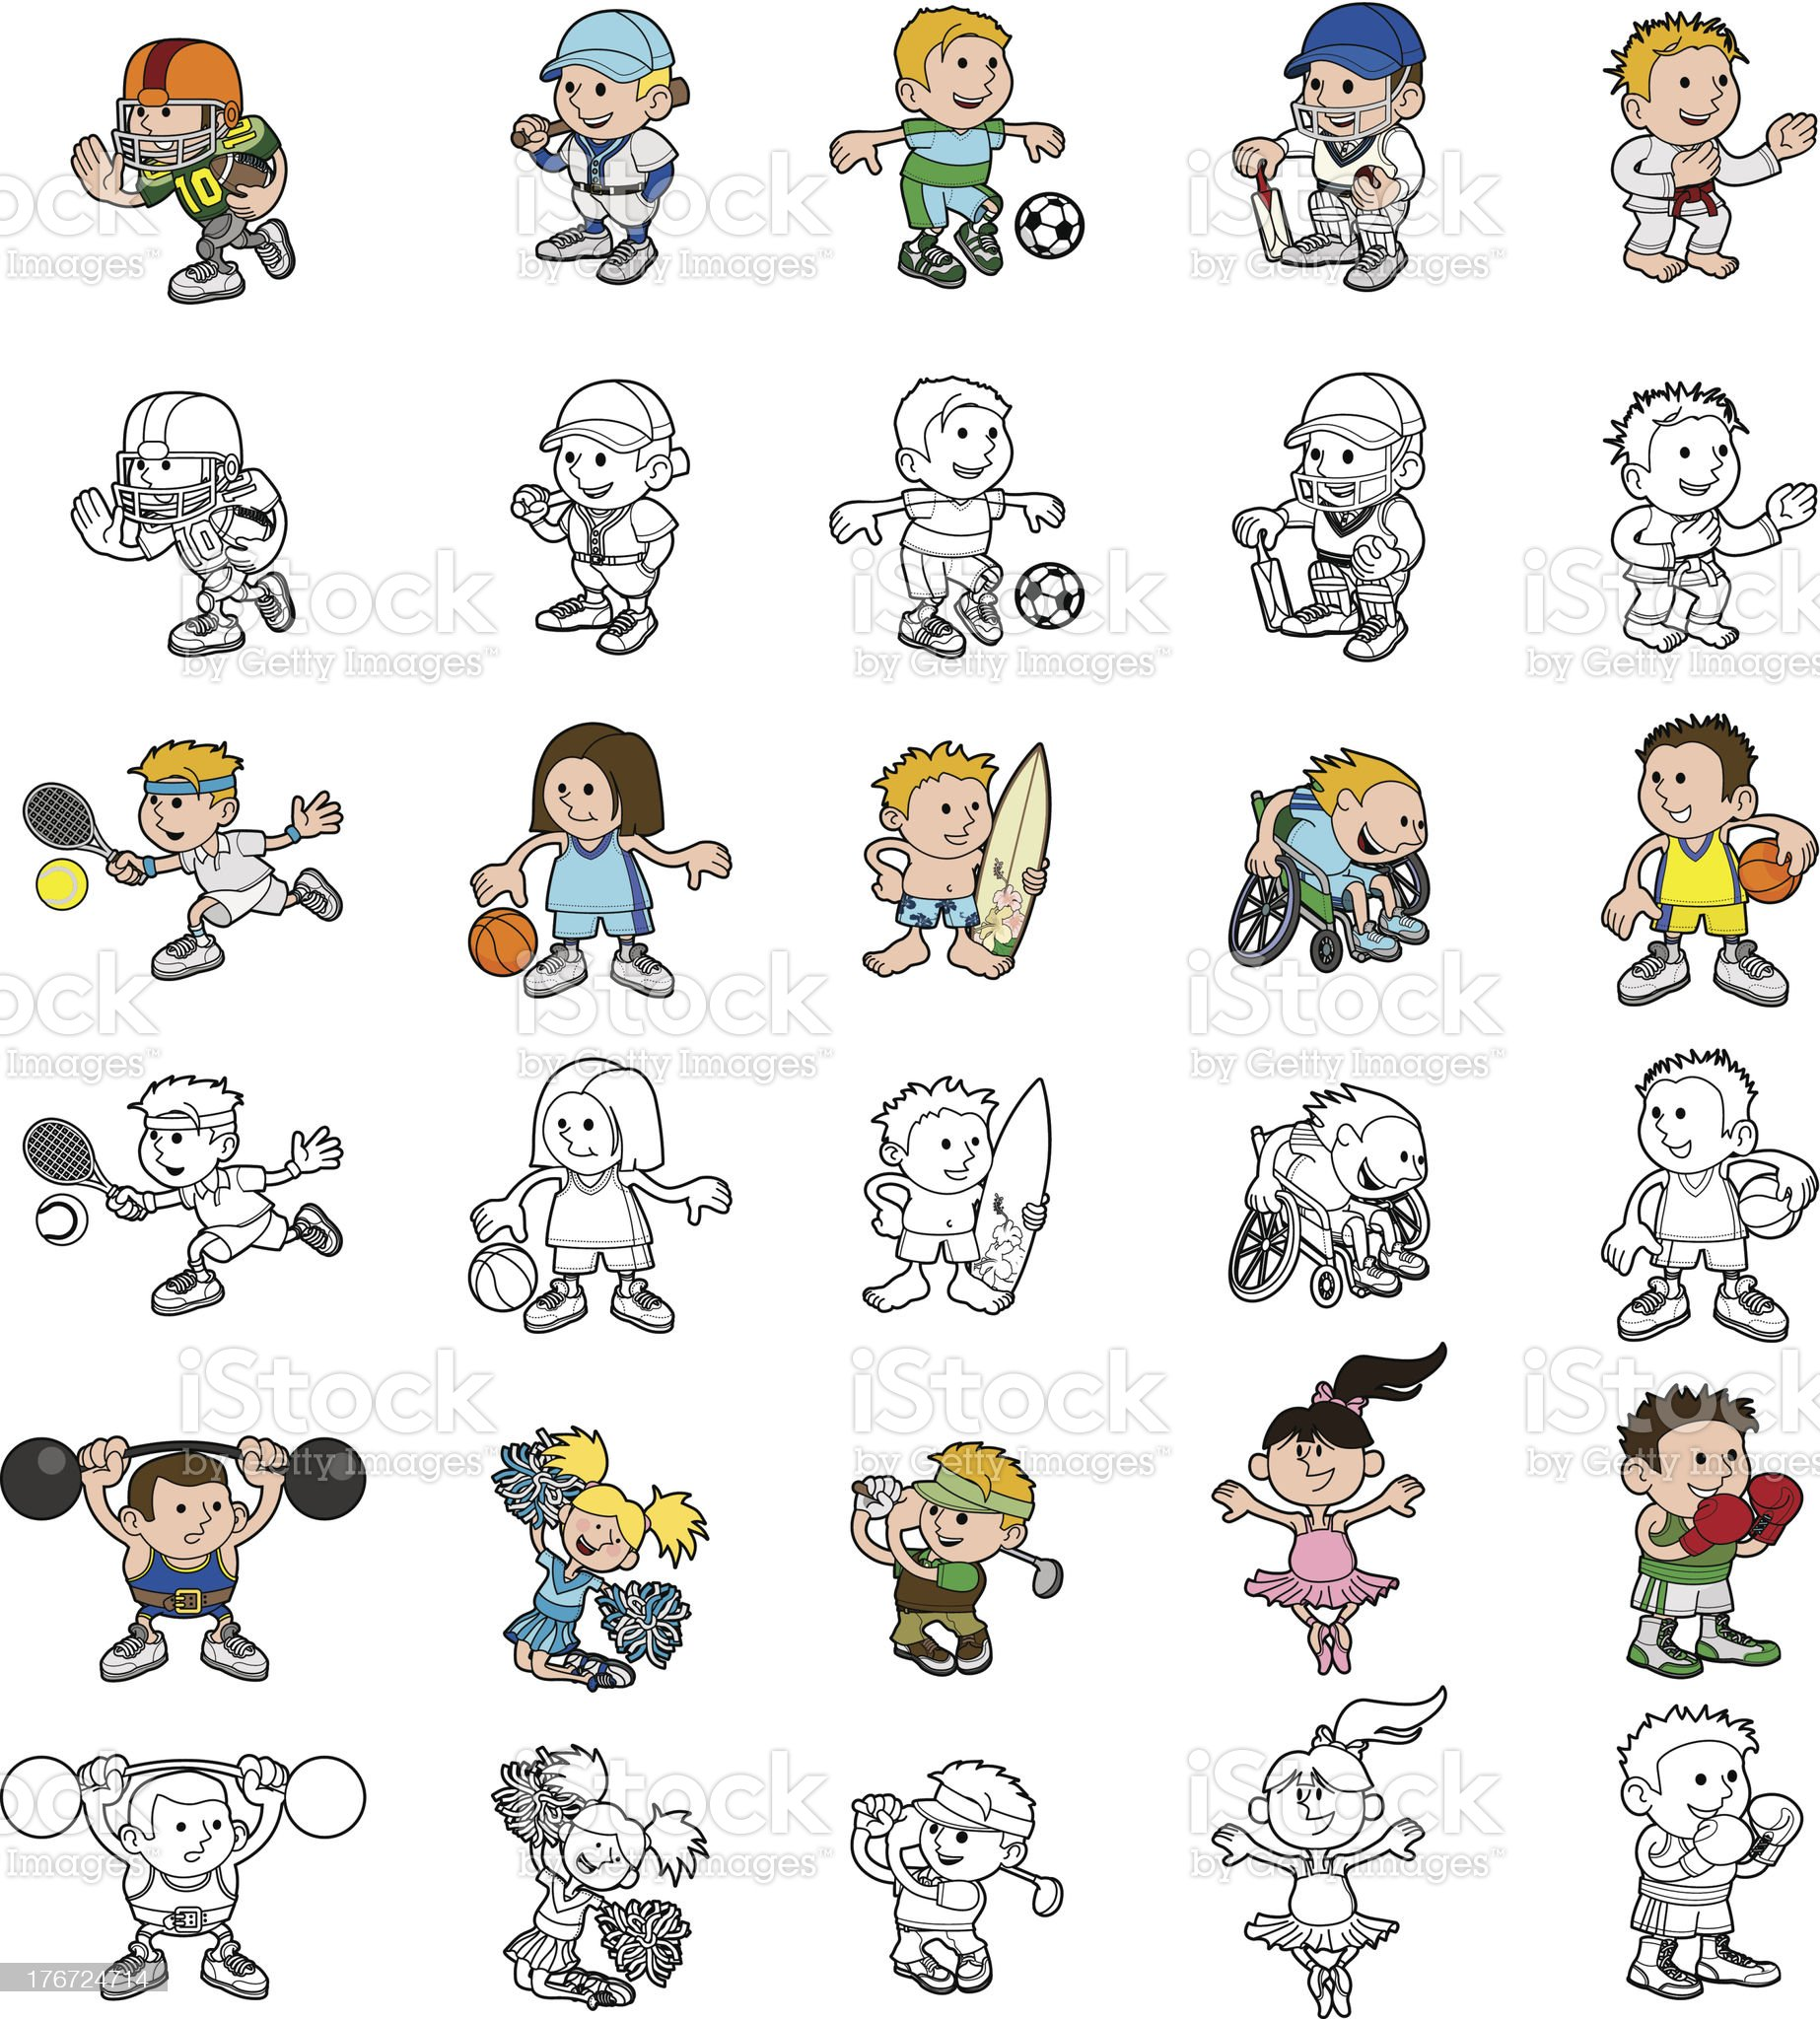 Cartoon people playing sports royalty-free stock vector art